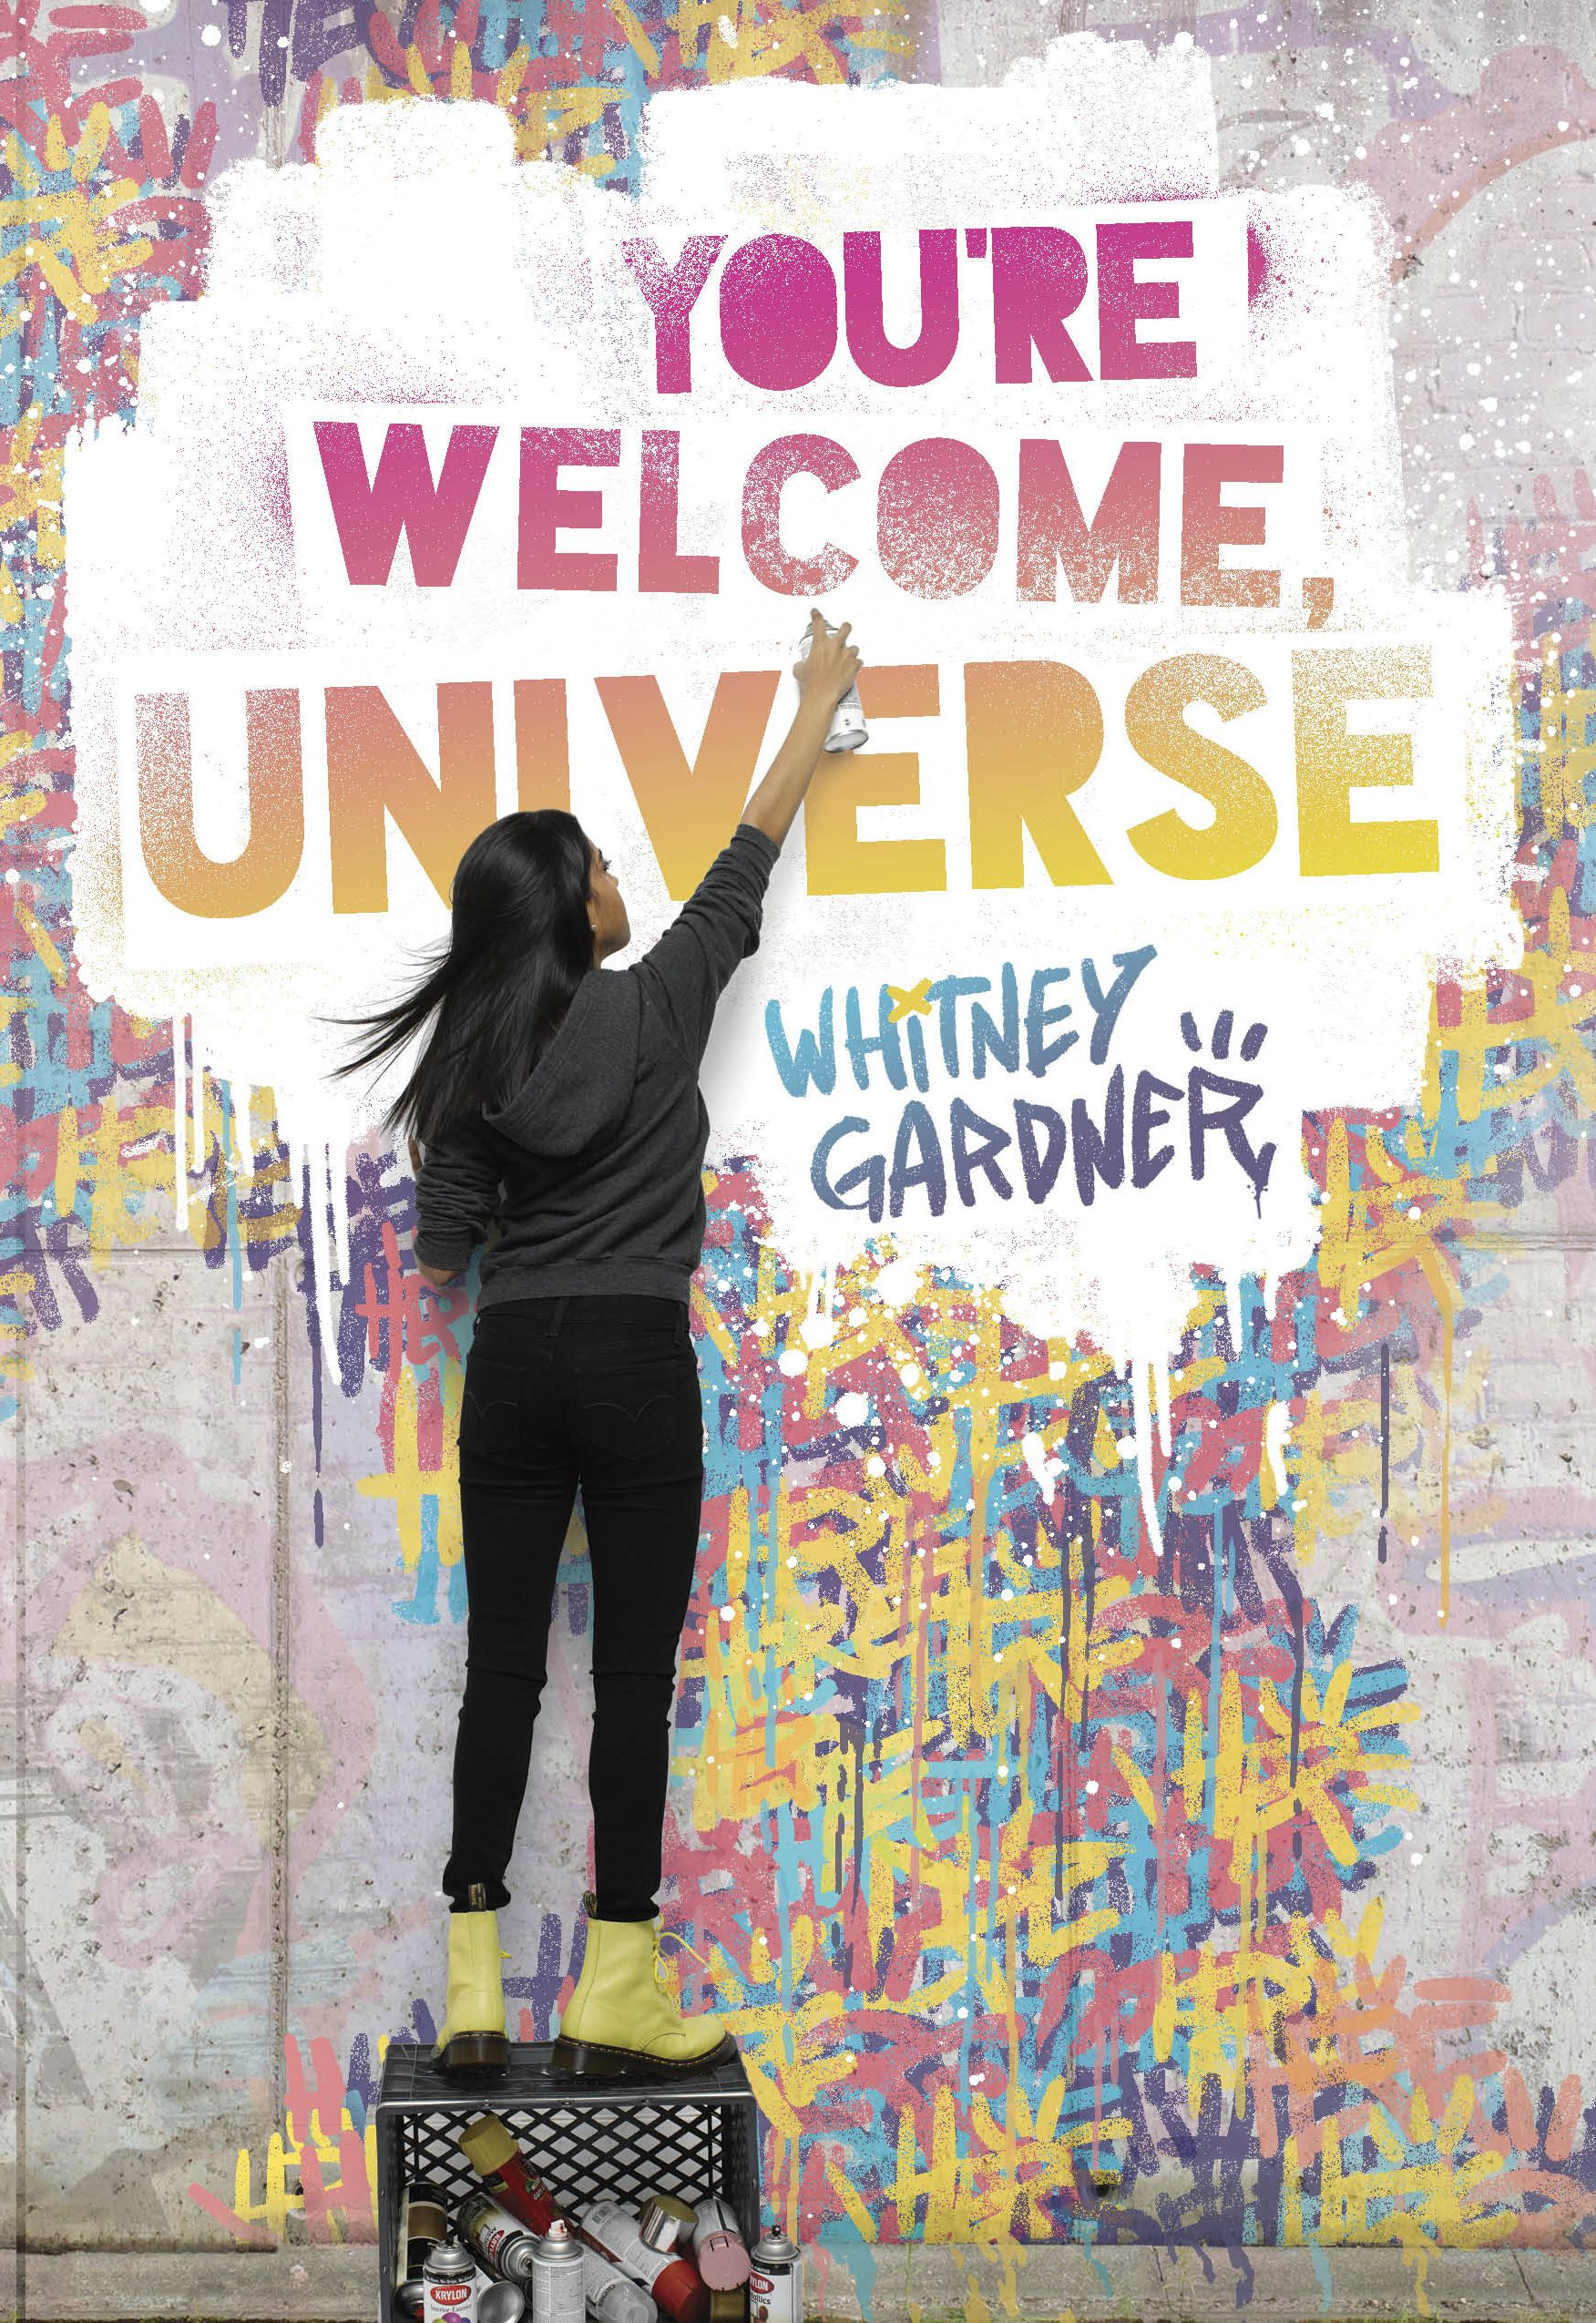 Successful query whitney gardner youre welcome universe example of an awesome query to send to literary agents literary agents query spiritdancerdesigns Choice Image